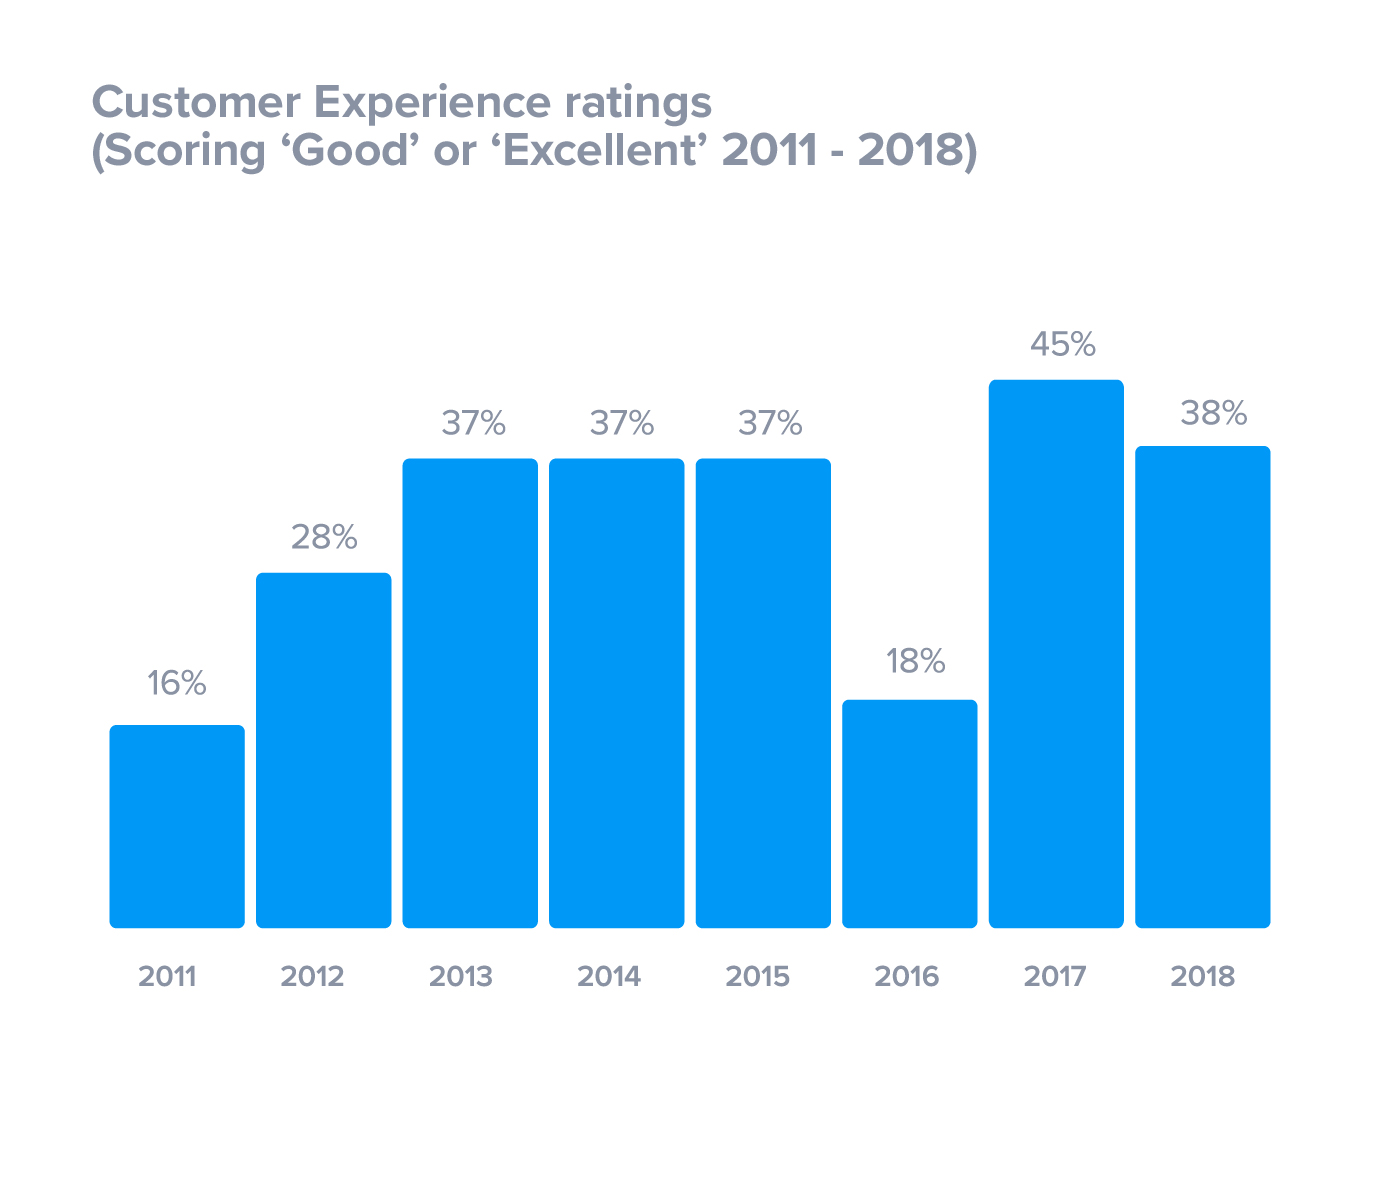 Customer experience ratings 2011 to 2018